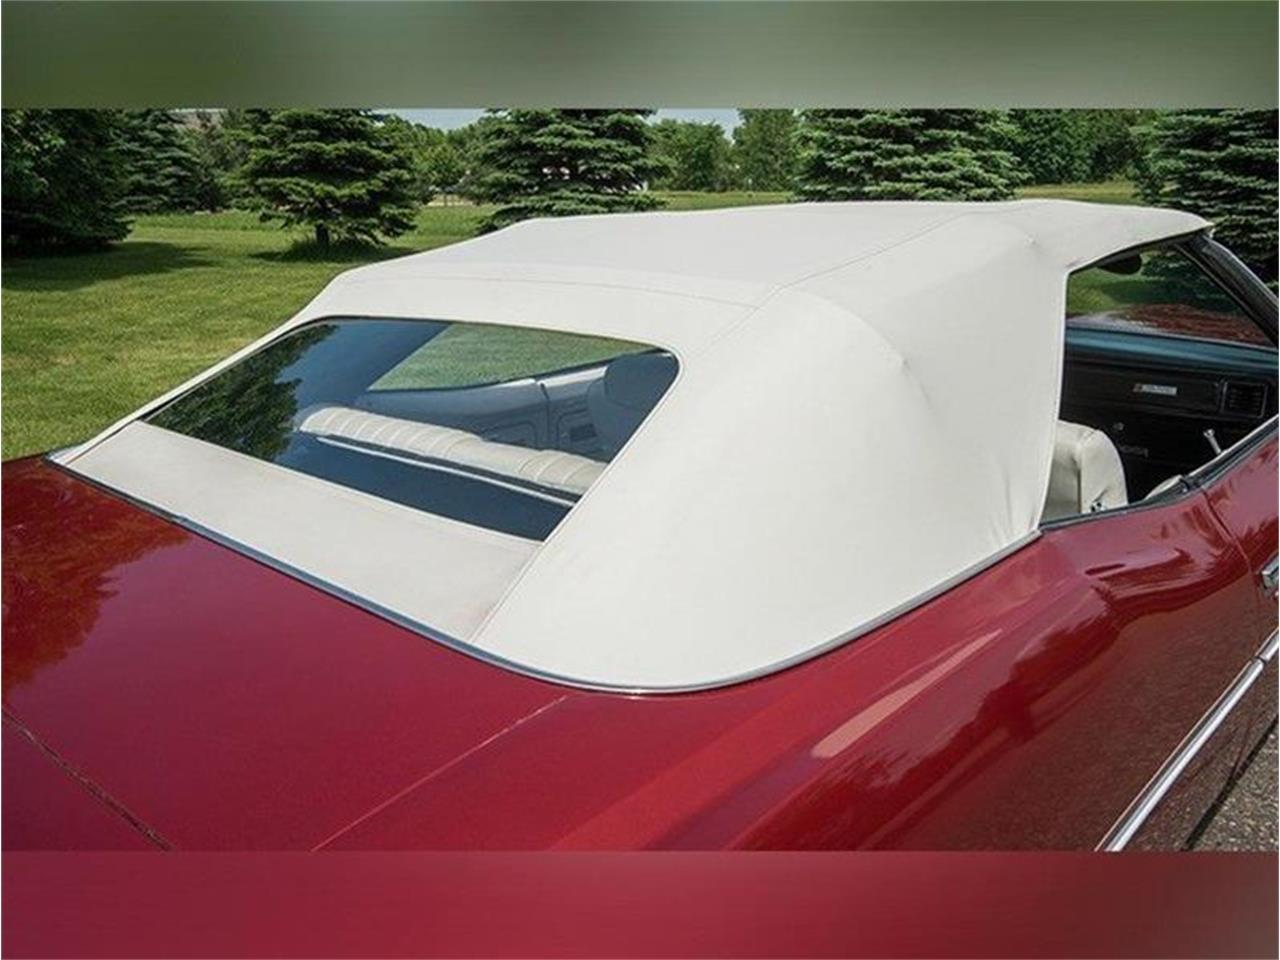 Large Picture of '72 Pontiac Catalina located in Rogers Minnesota - $14,500.00 - LE8D